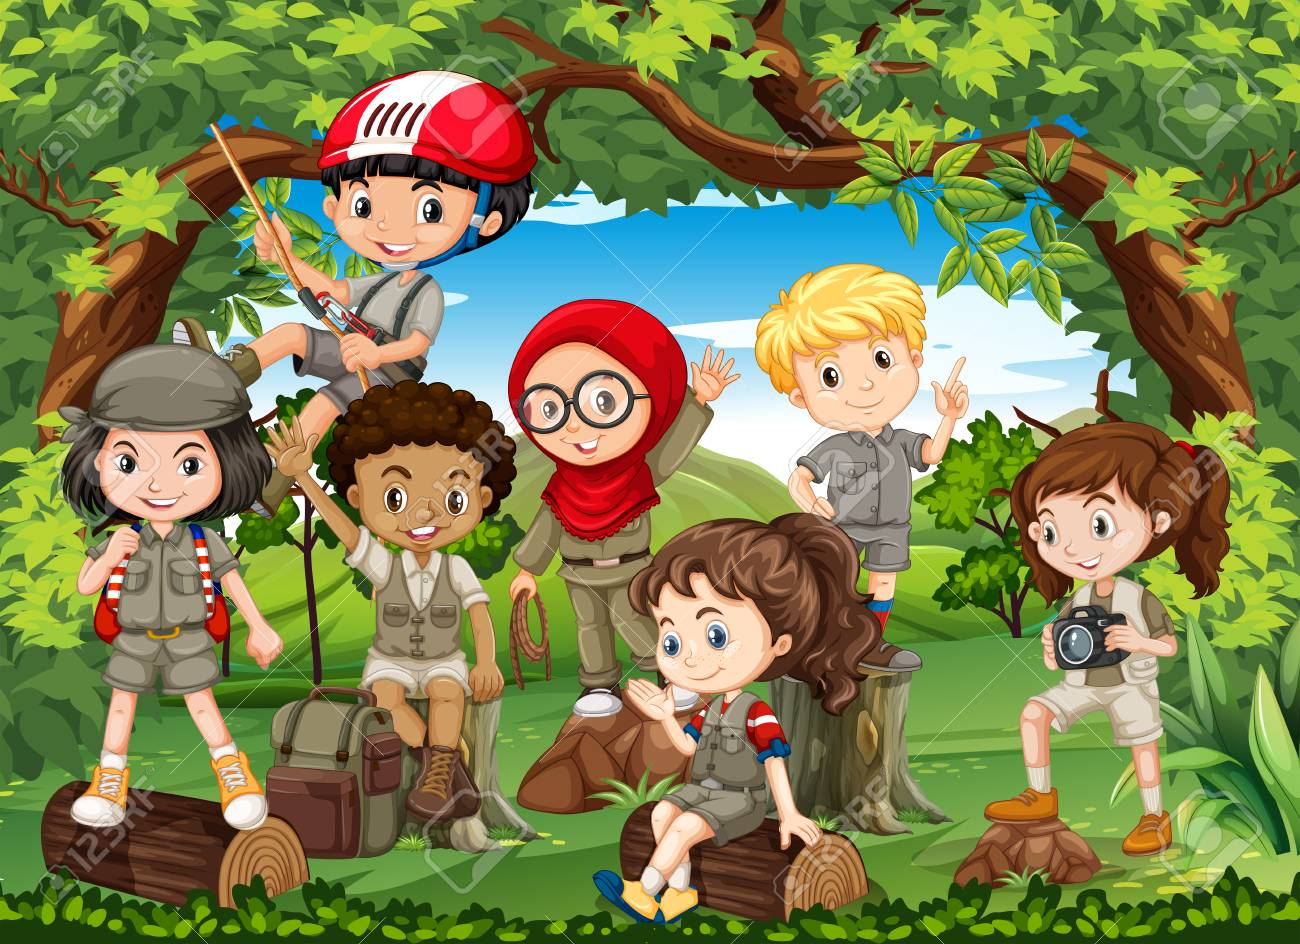 Many children hiking in the forest illustration